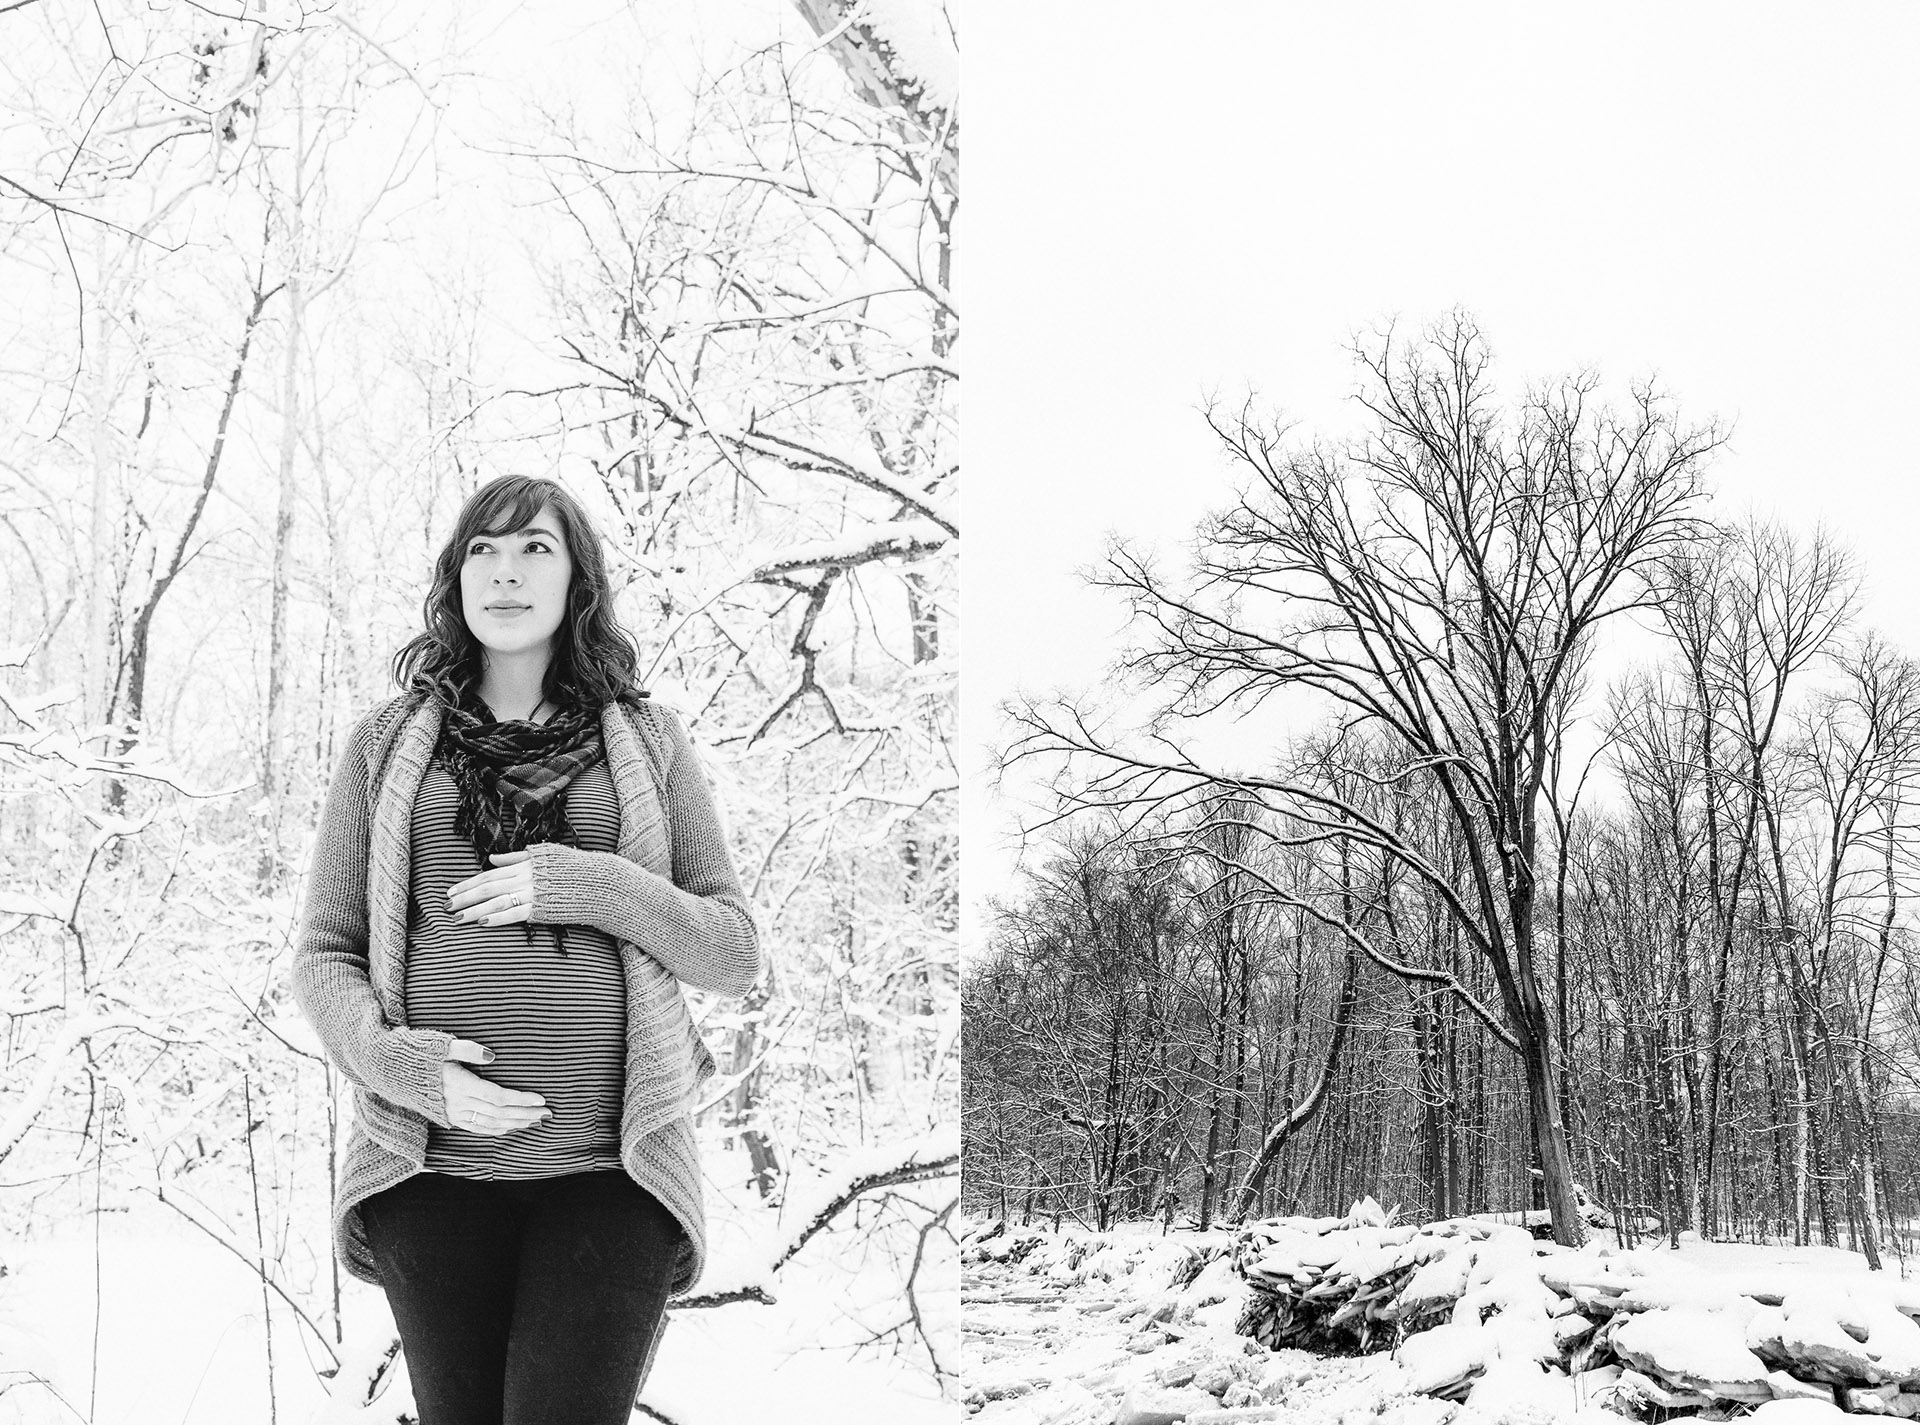 Angela Clunk Maternity Photos During Pregnancy - too much awesomeness photography - image 42.jpg